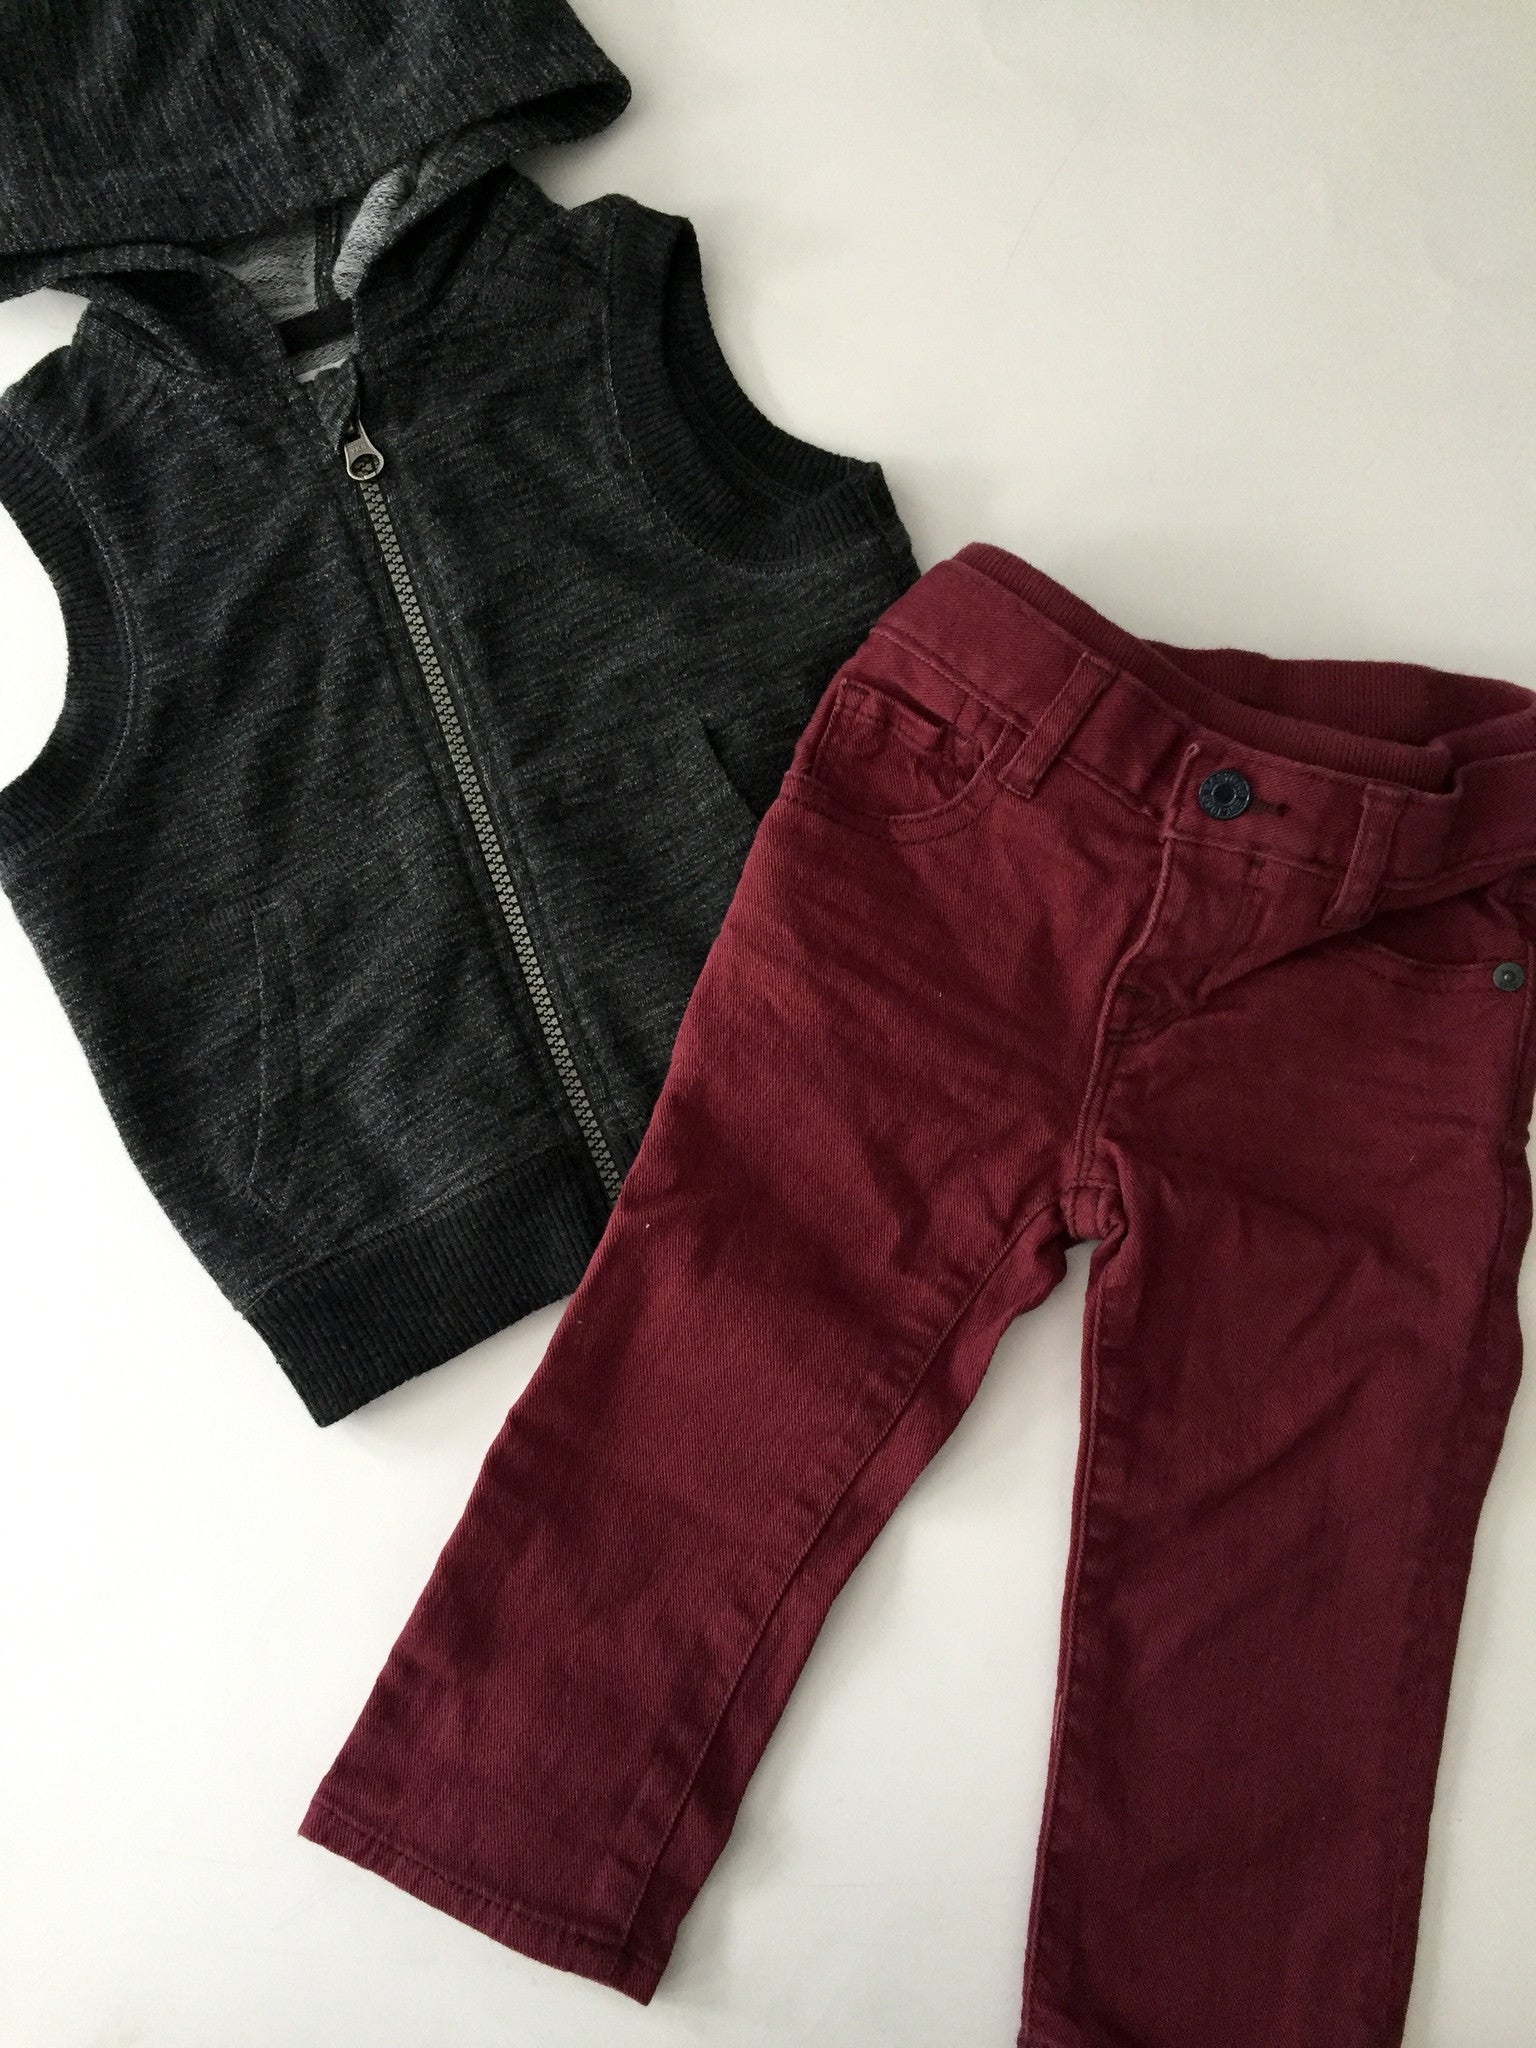 Joe Fresh Burgundy Jeans + Sleeveless Hoodie Vest | 12-18M